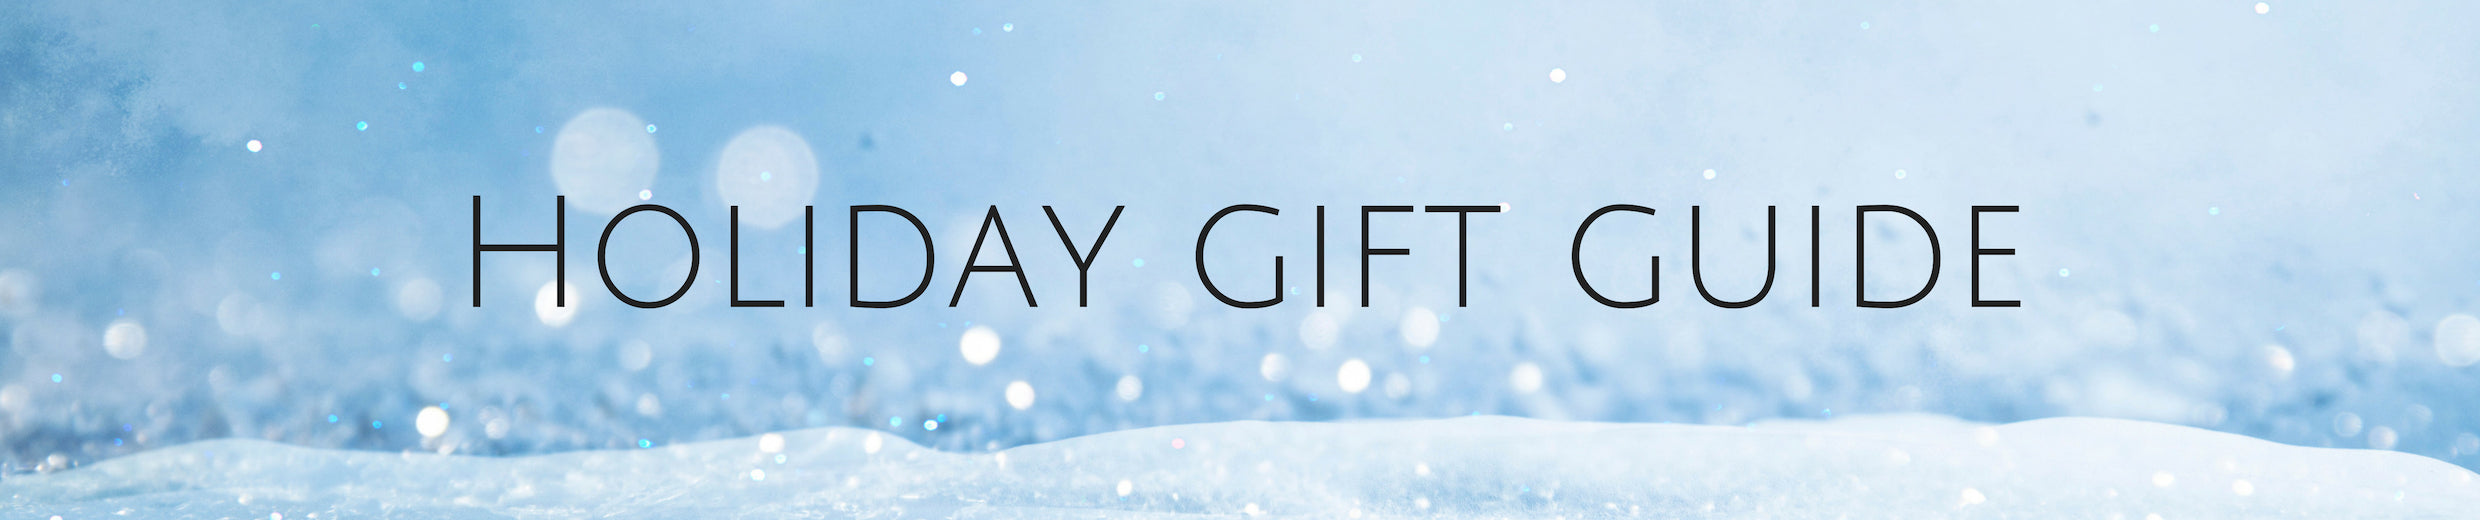 Holidays 2018 Gift Guide